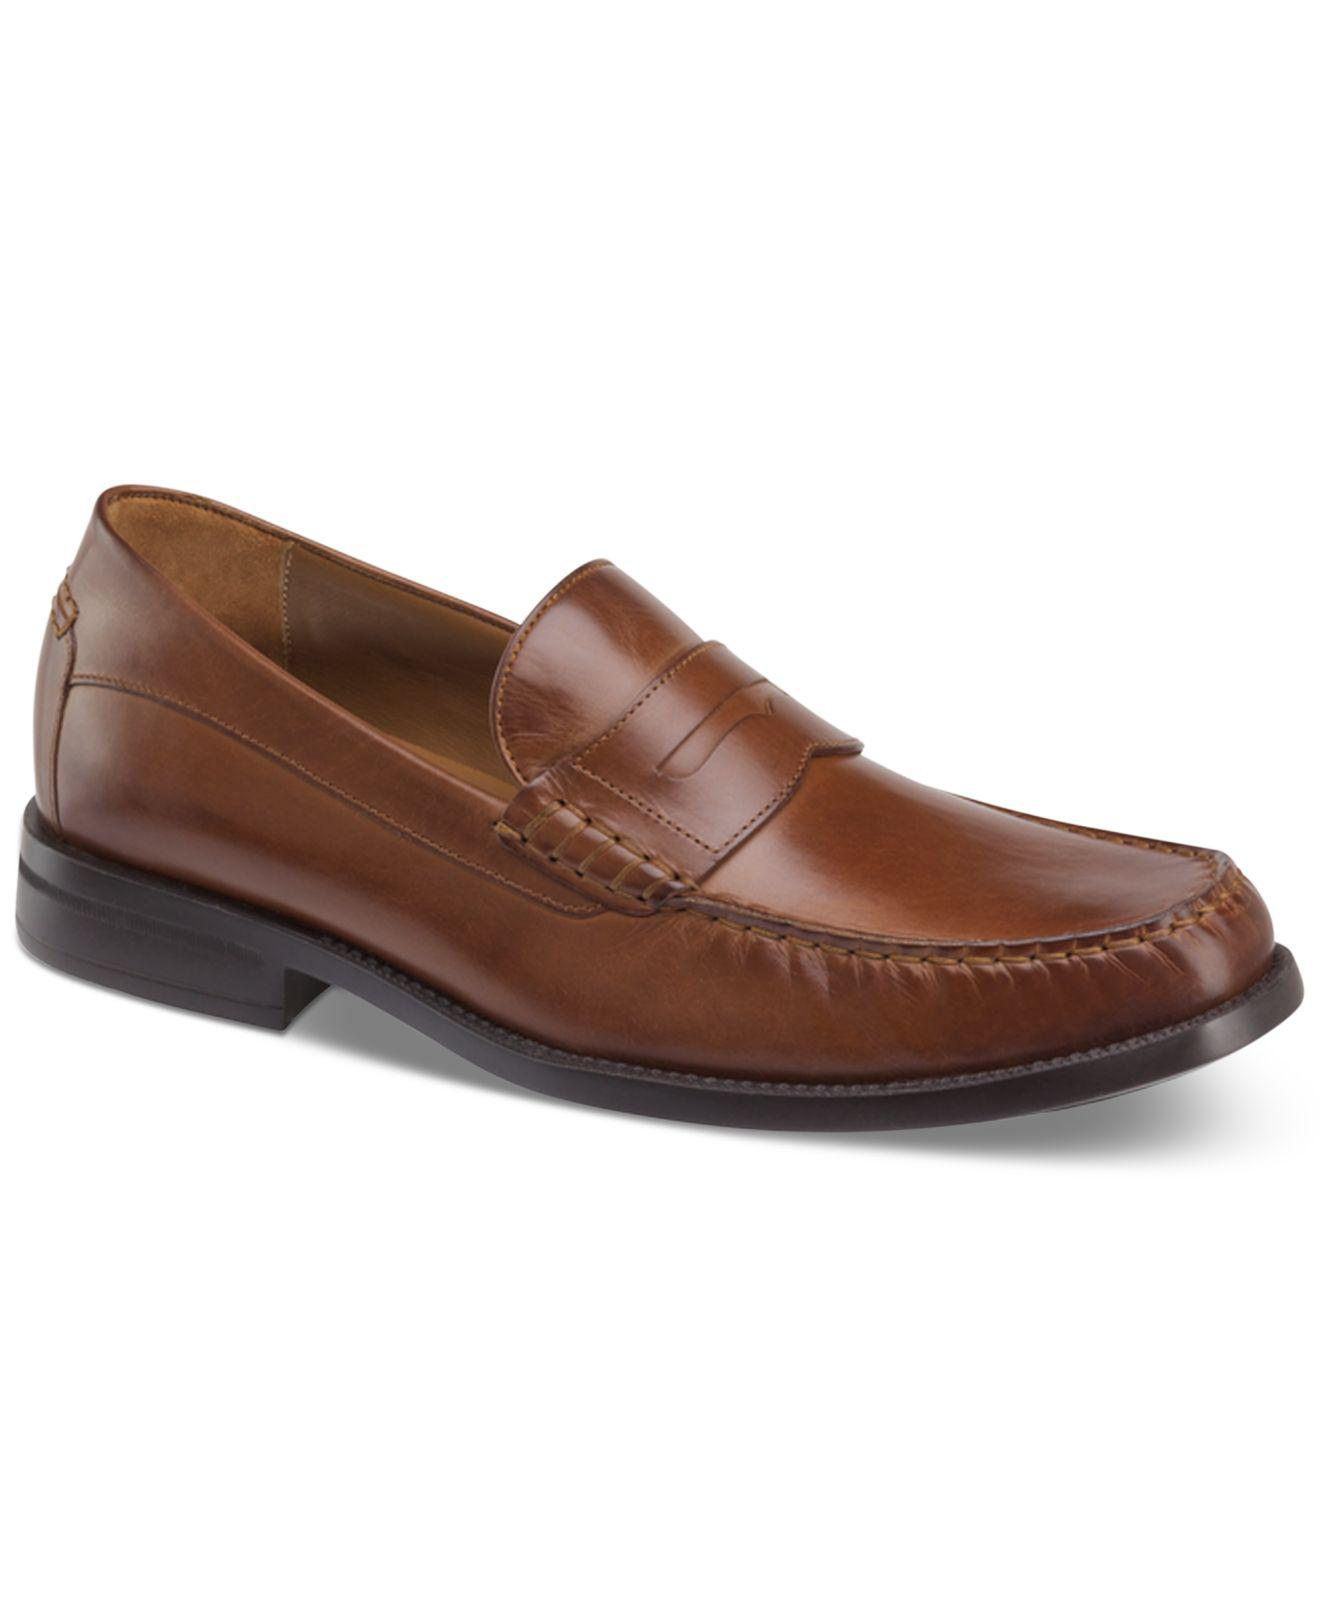 Johnston & Murphy Men's Chadwell Penny Moc-Toe Slip-On Loafers Men's Shoes GCOWvfur